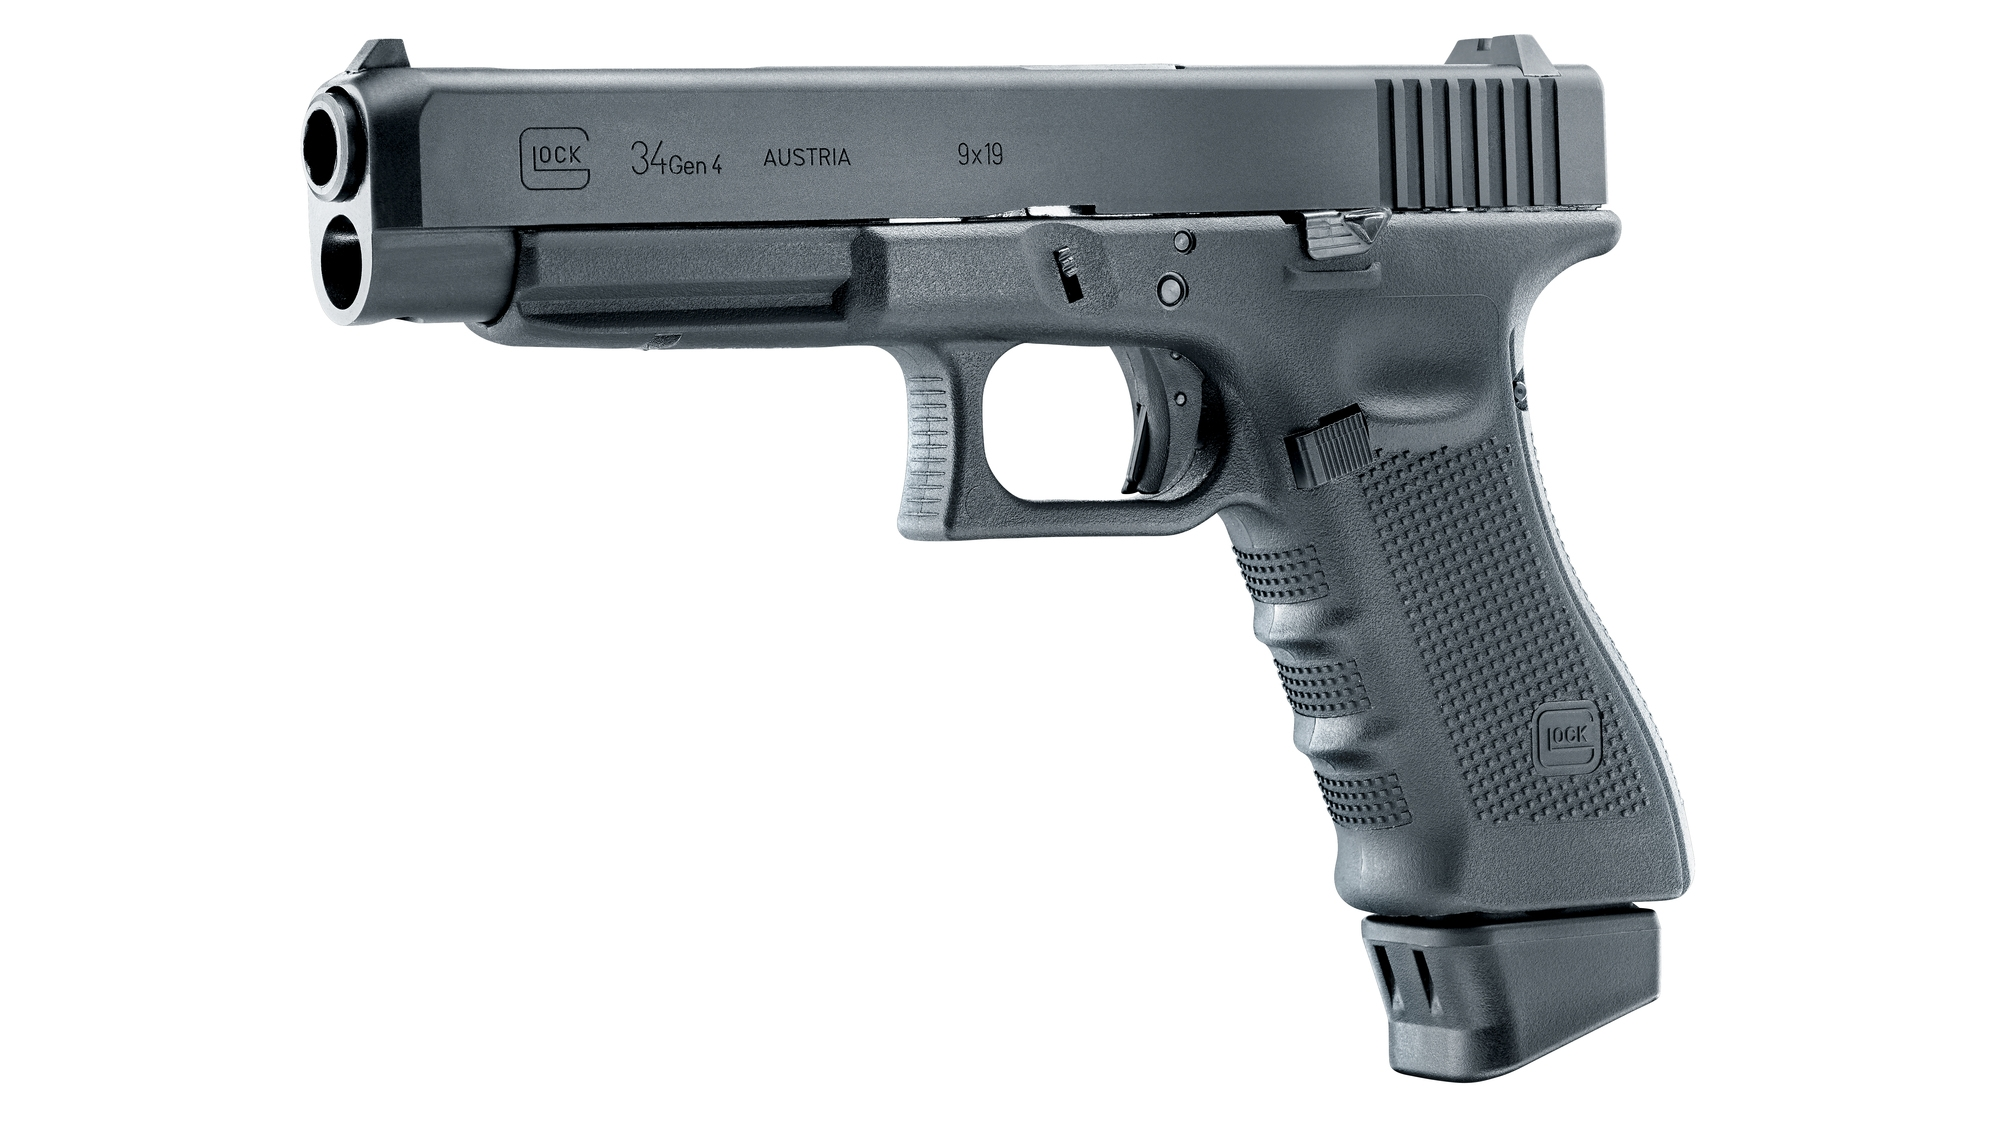 Glock 34 Deluxe Airsoftpistole 6mm BB Blowback